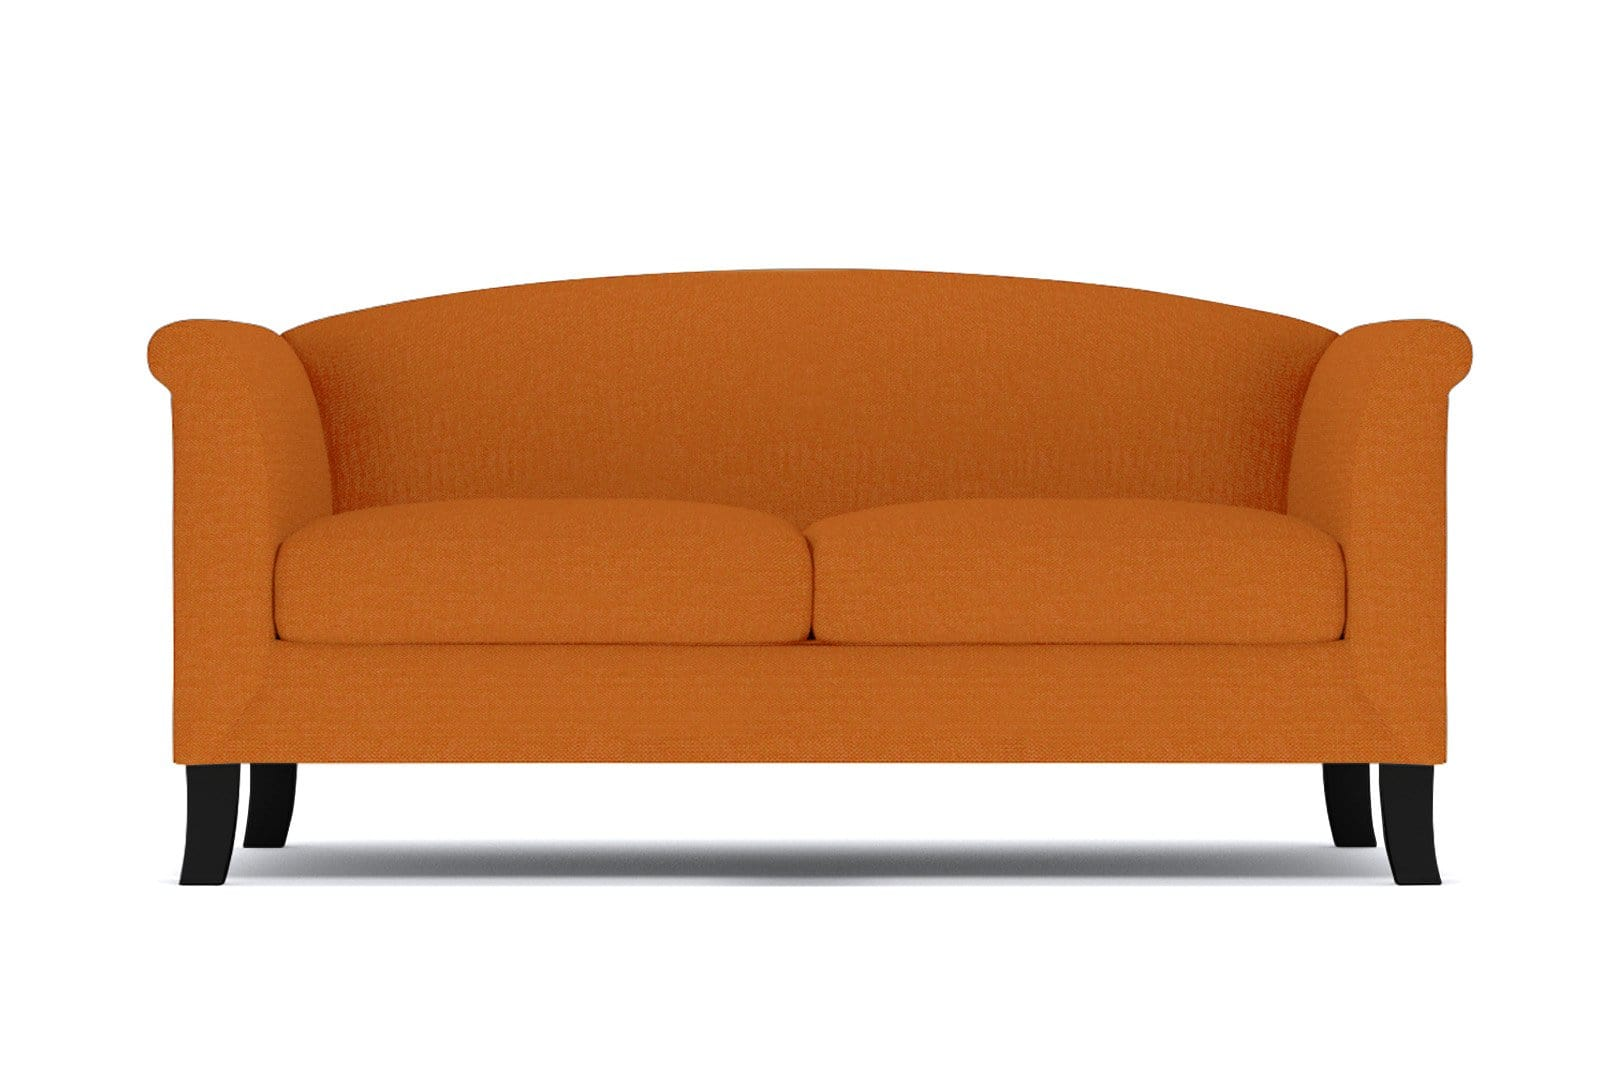 Albright_Loveseat__Orange___Small_Space_Modern_Couch_Made_in_the_USA__Sold_by_Apt2B